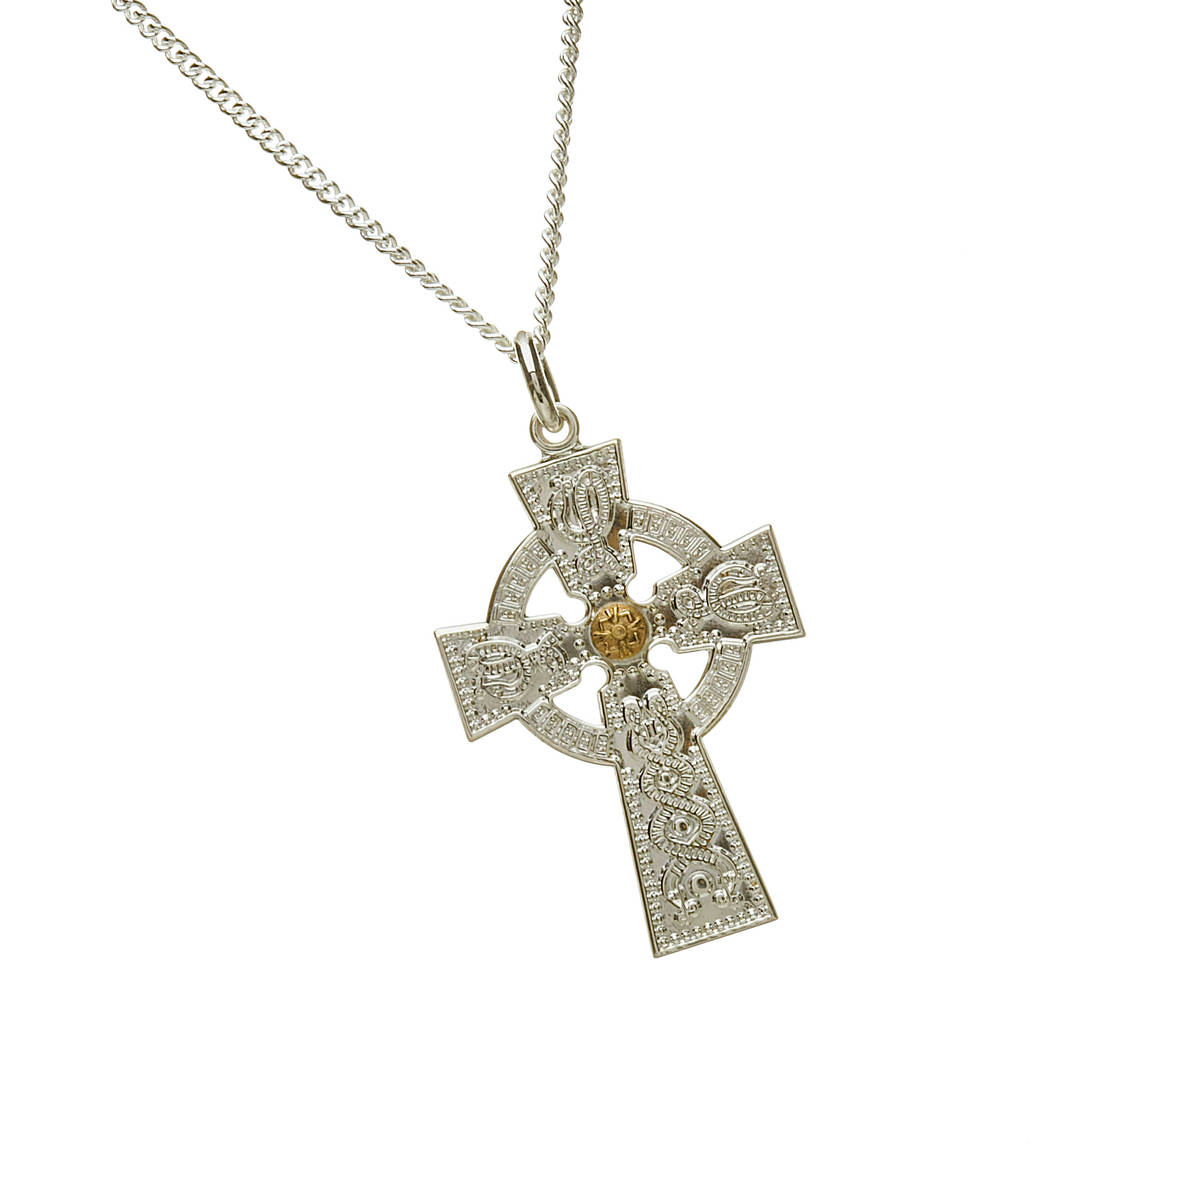 "Arda Lge Sil (30mm)celt Cross & 14ct Boss 18"" Chain-an accurate example of the Arda cross"